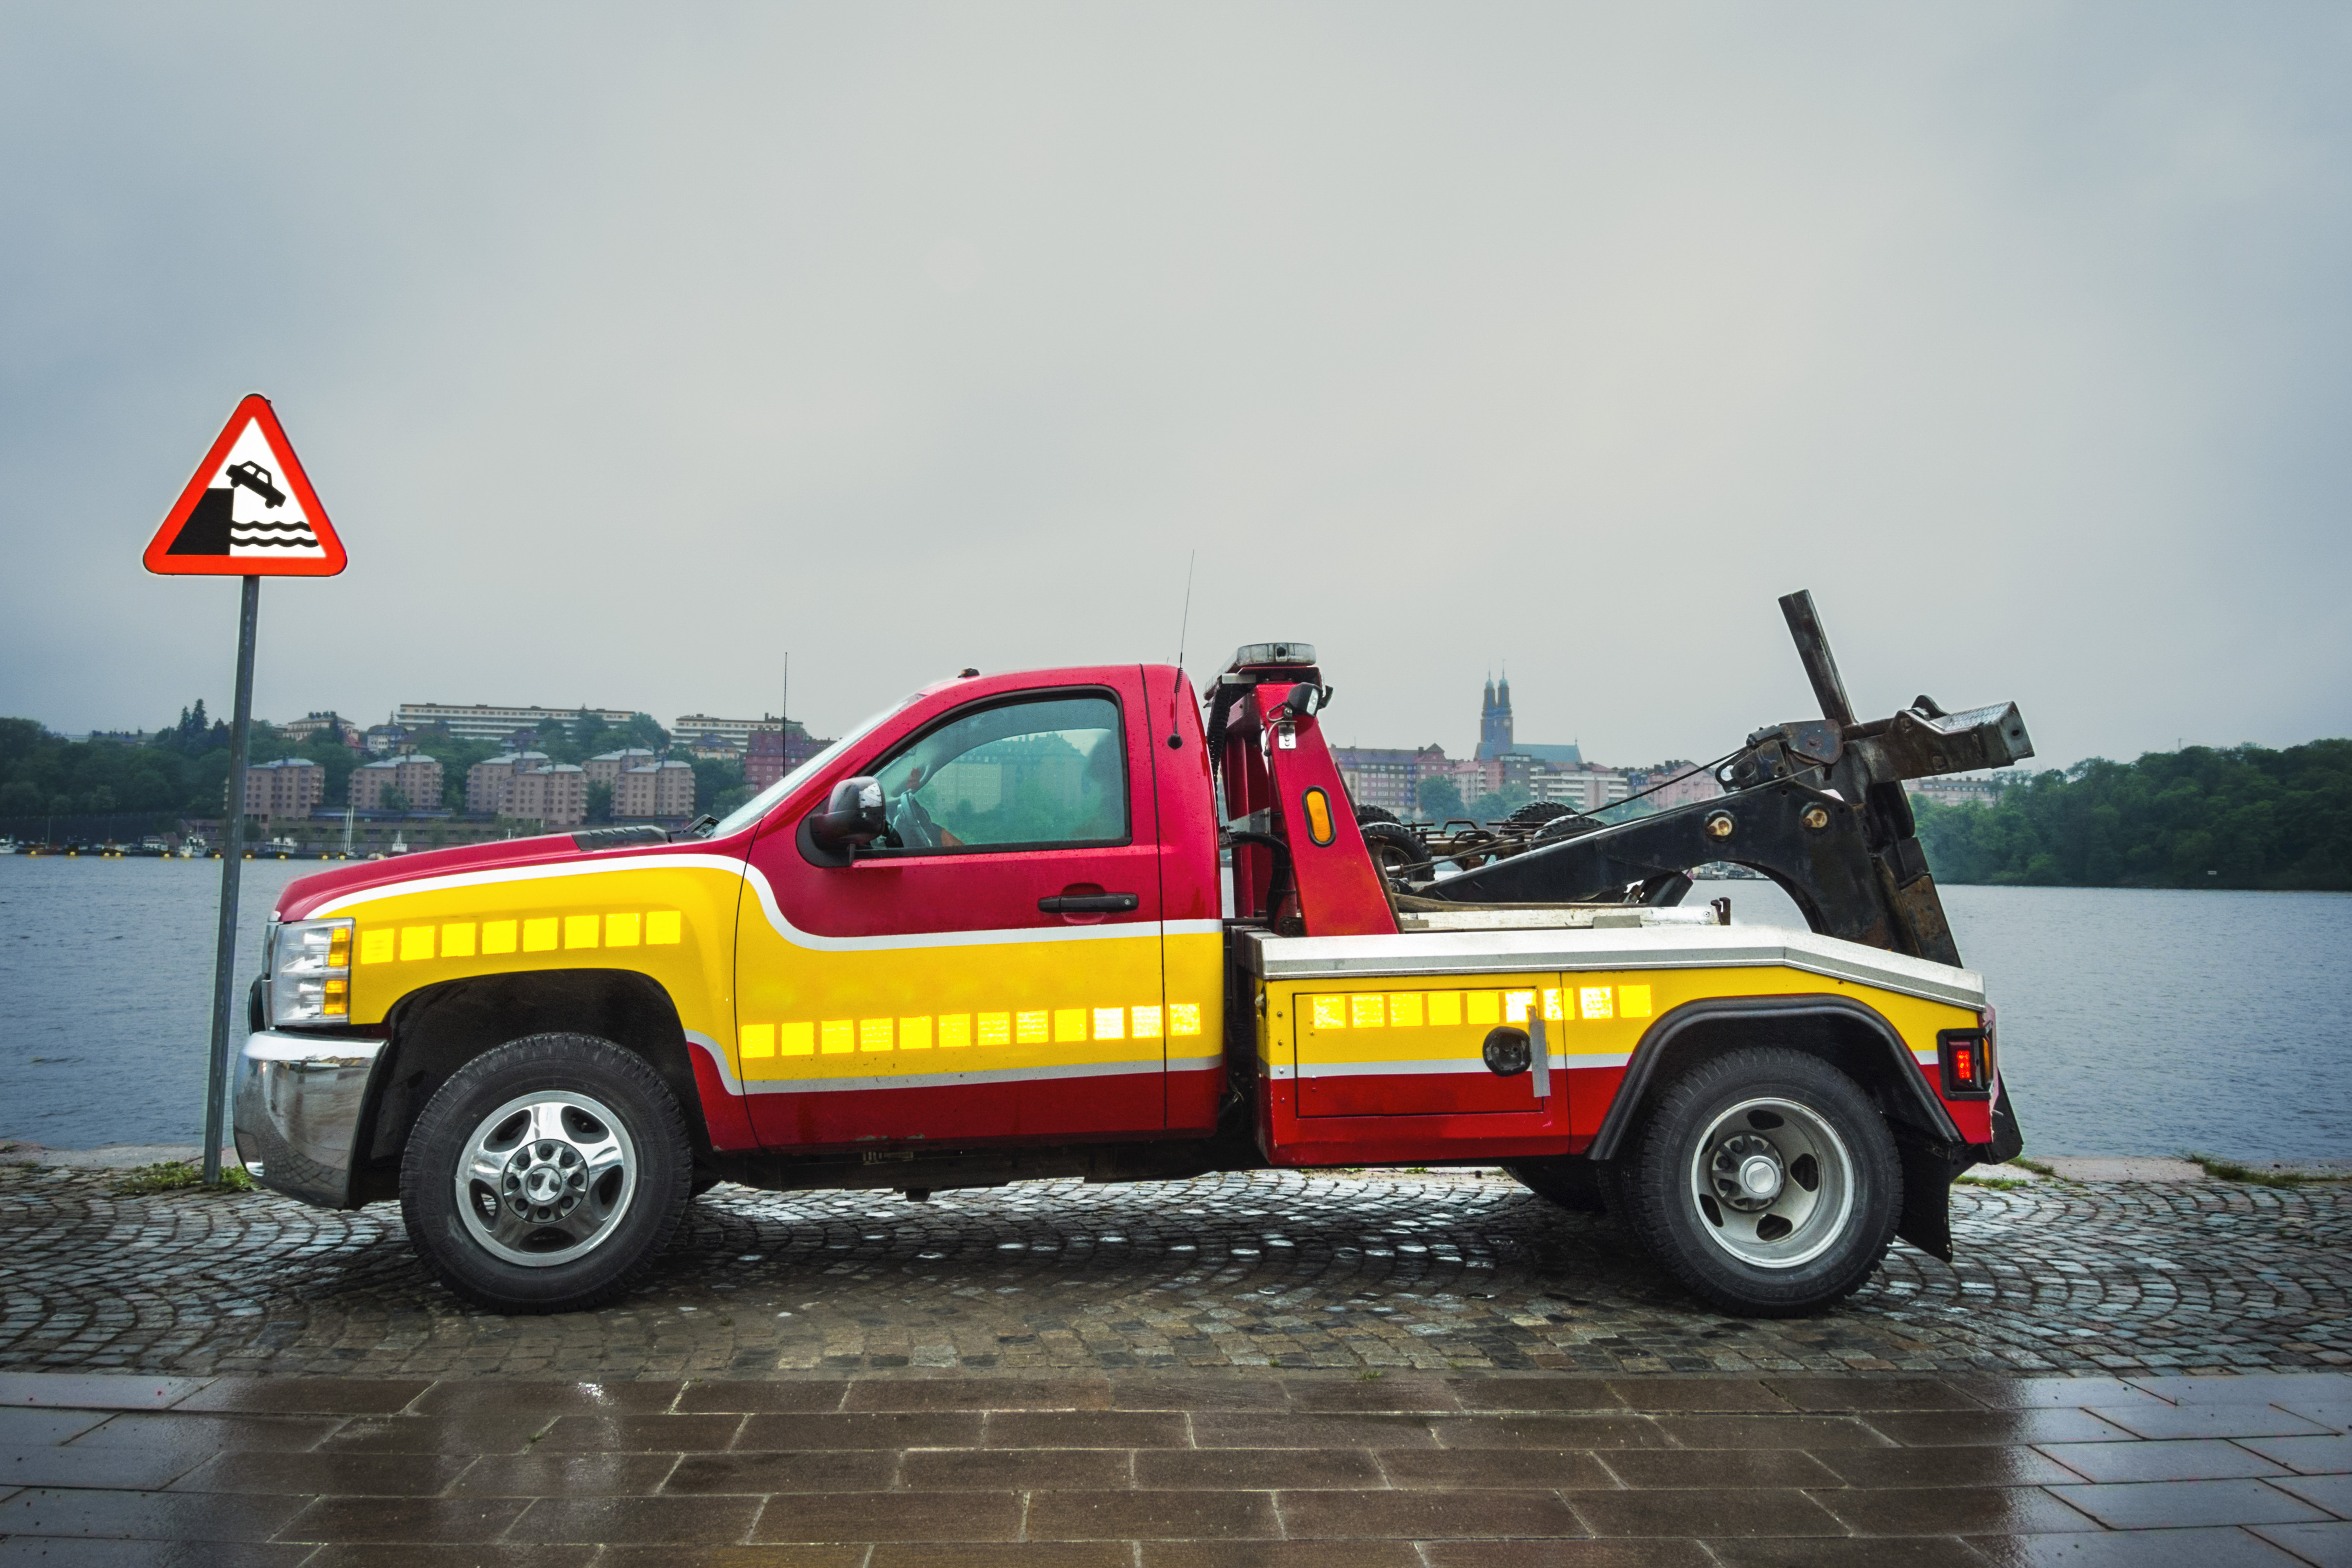 How to Get a Tow Truck Permit in California | Career Trend